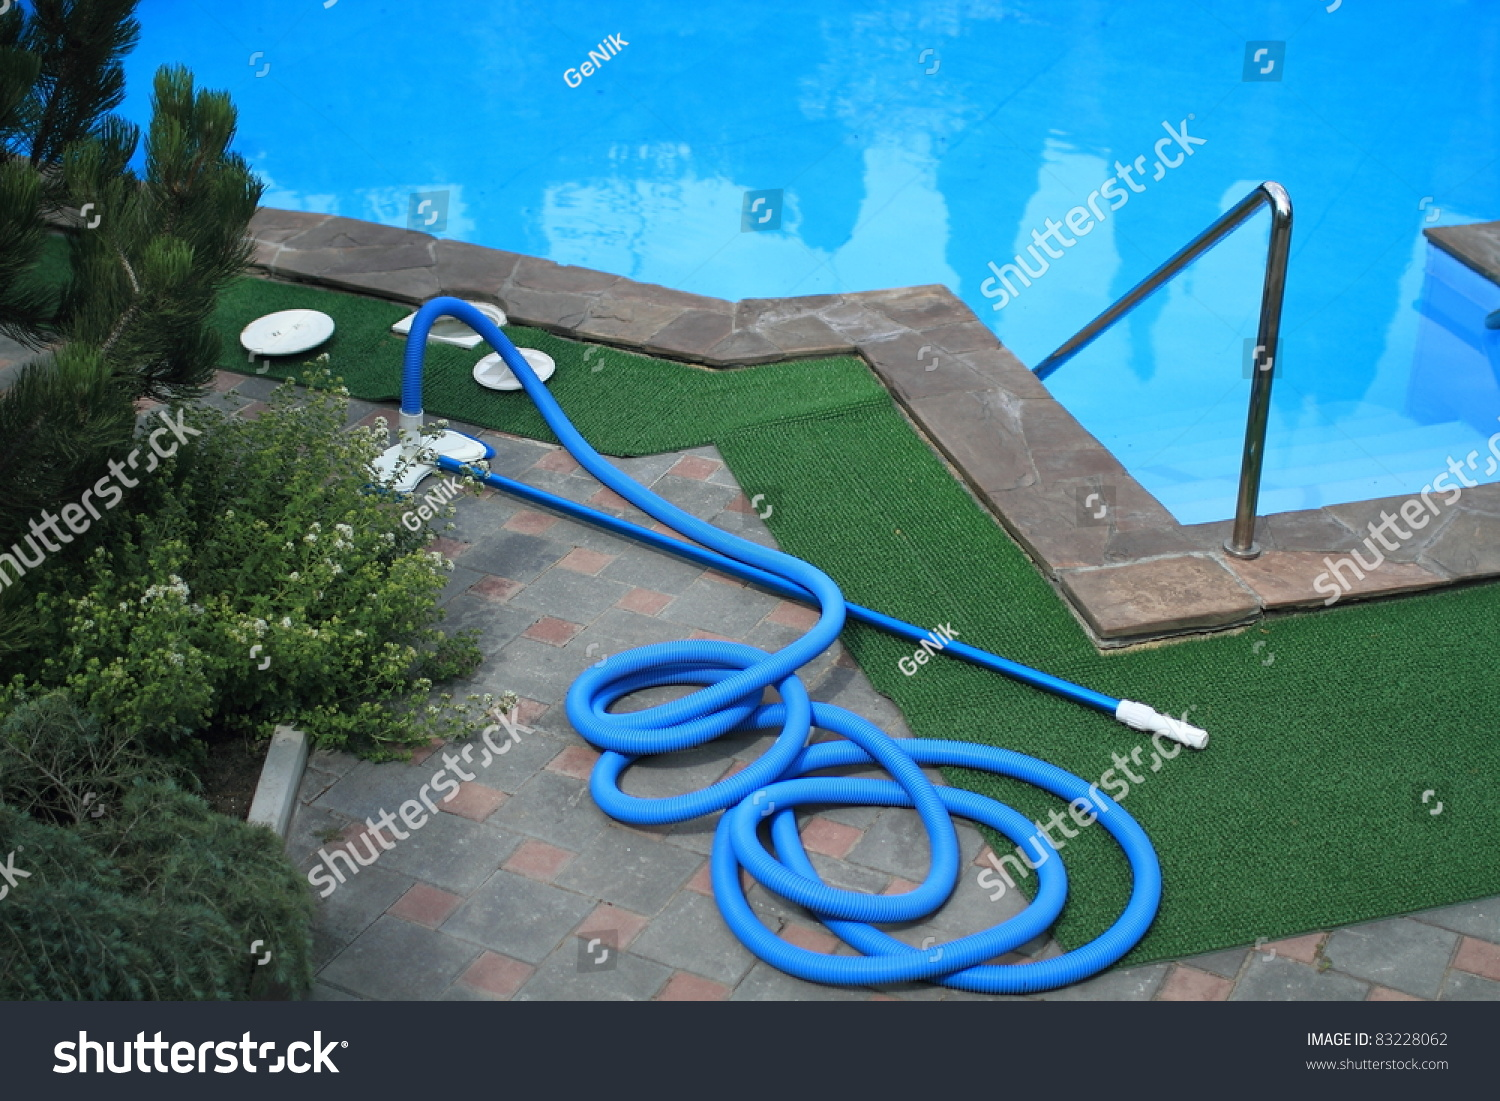 Swimming Pool Cleaning Equipment Stock Photo 83228062 Shutterstock